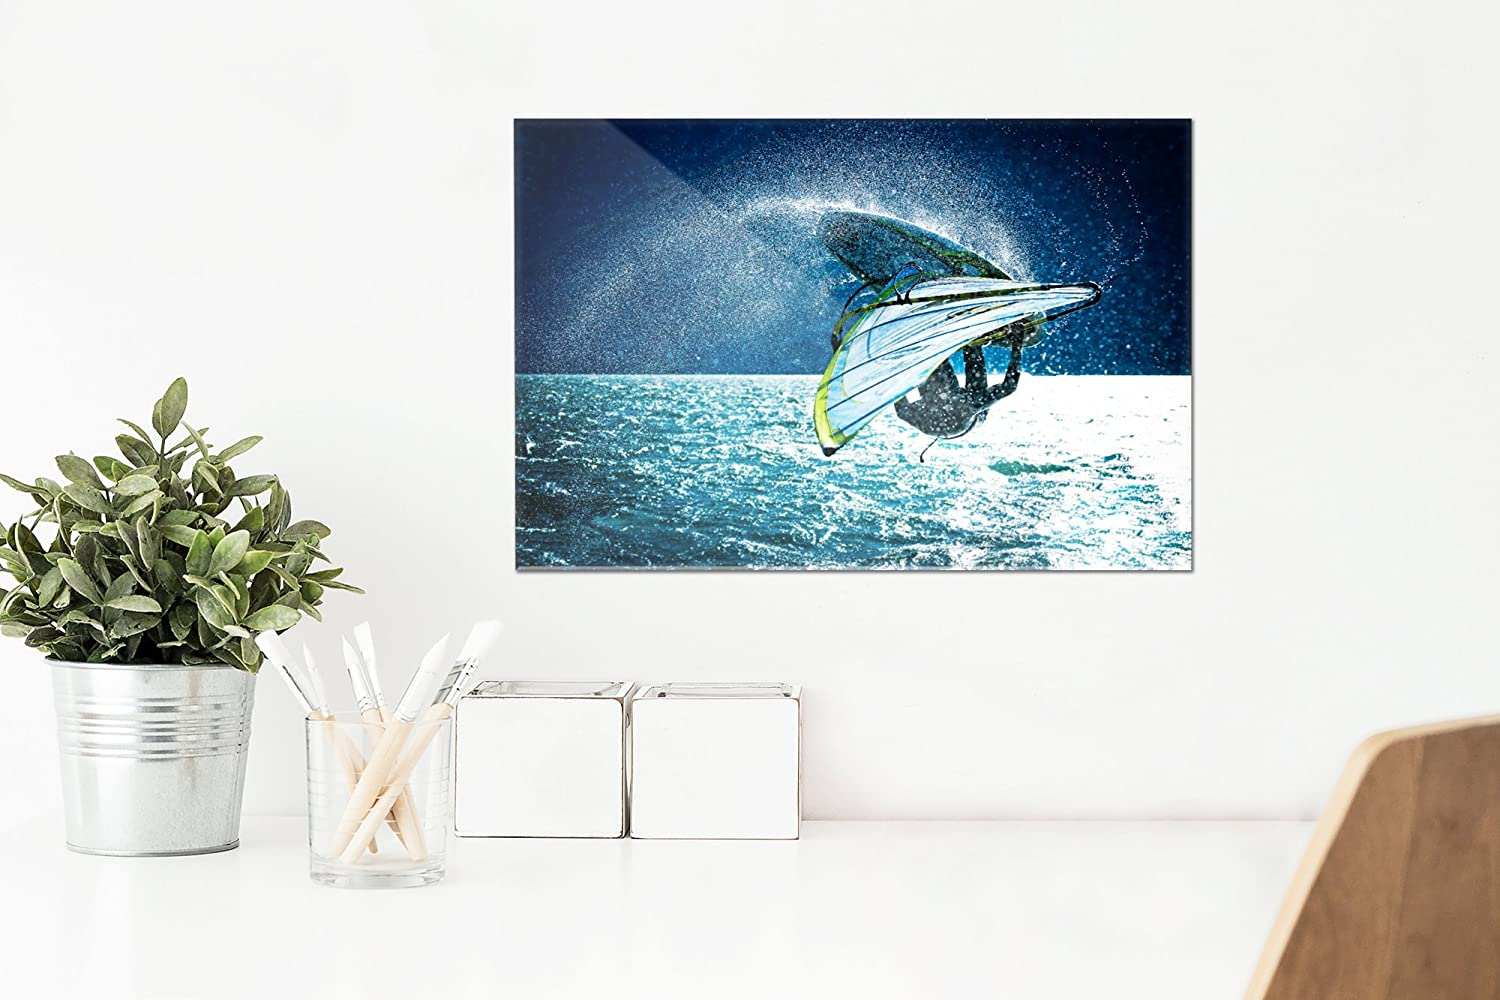 12x8 Acrylic Photo Block Gallery Quality Windsurfer Jumping